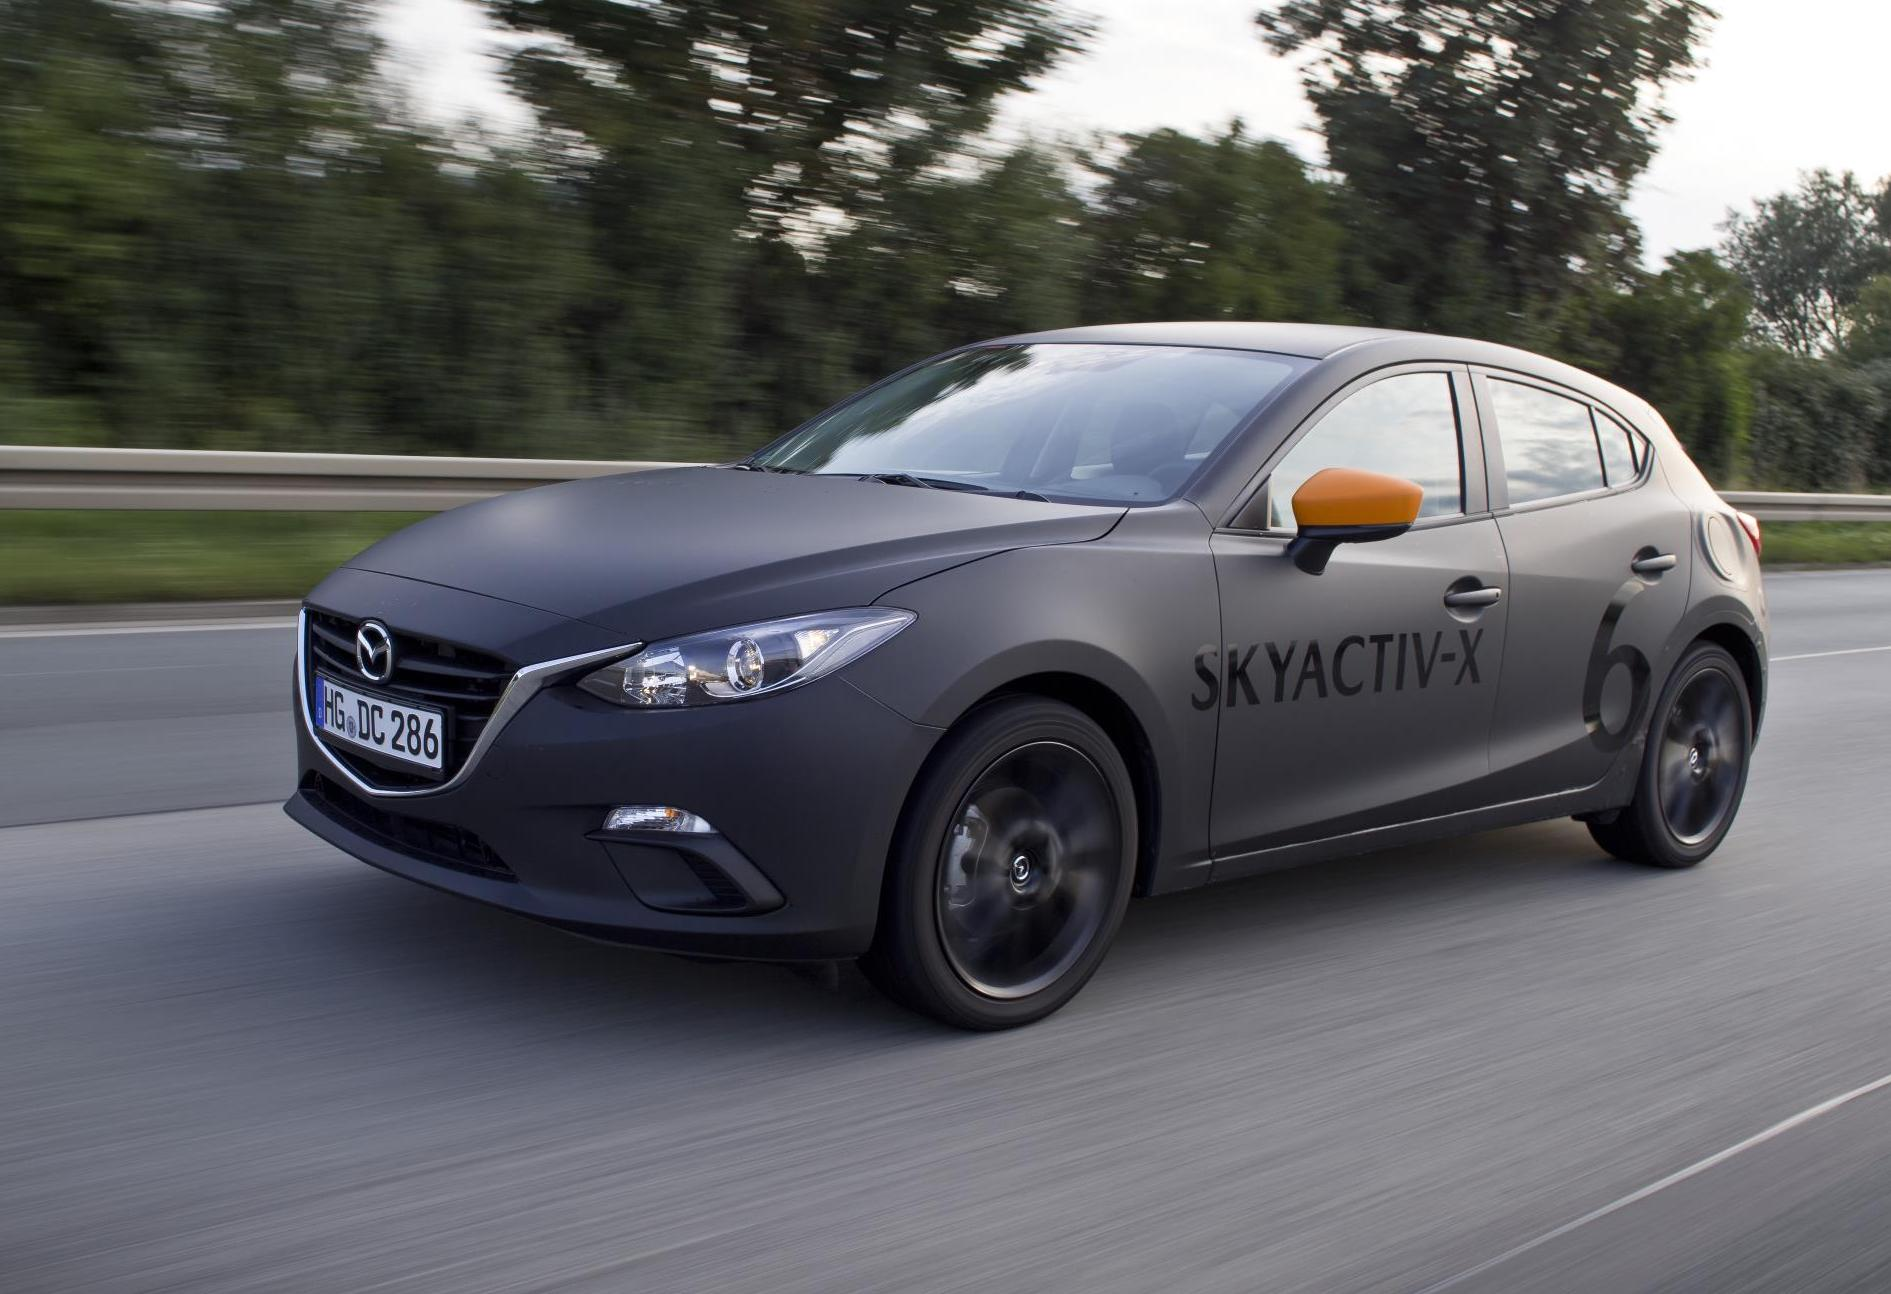 Mazda Skyactiv-X to form basis for new hybrid tech ...